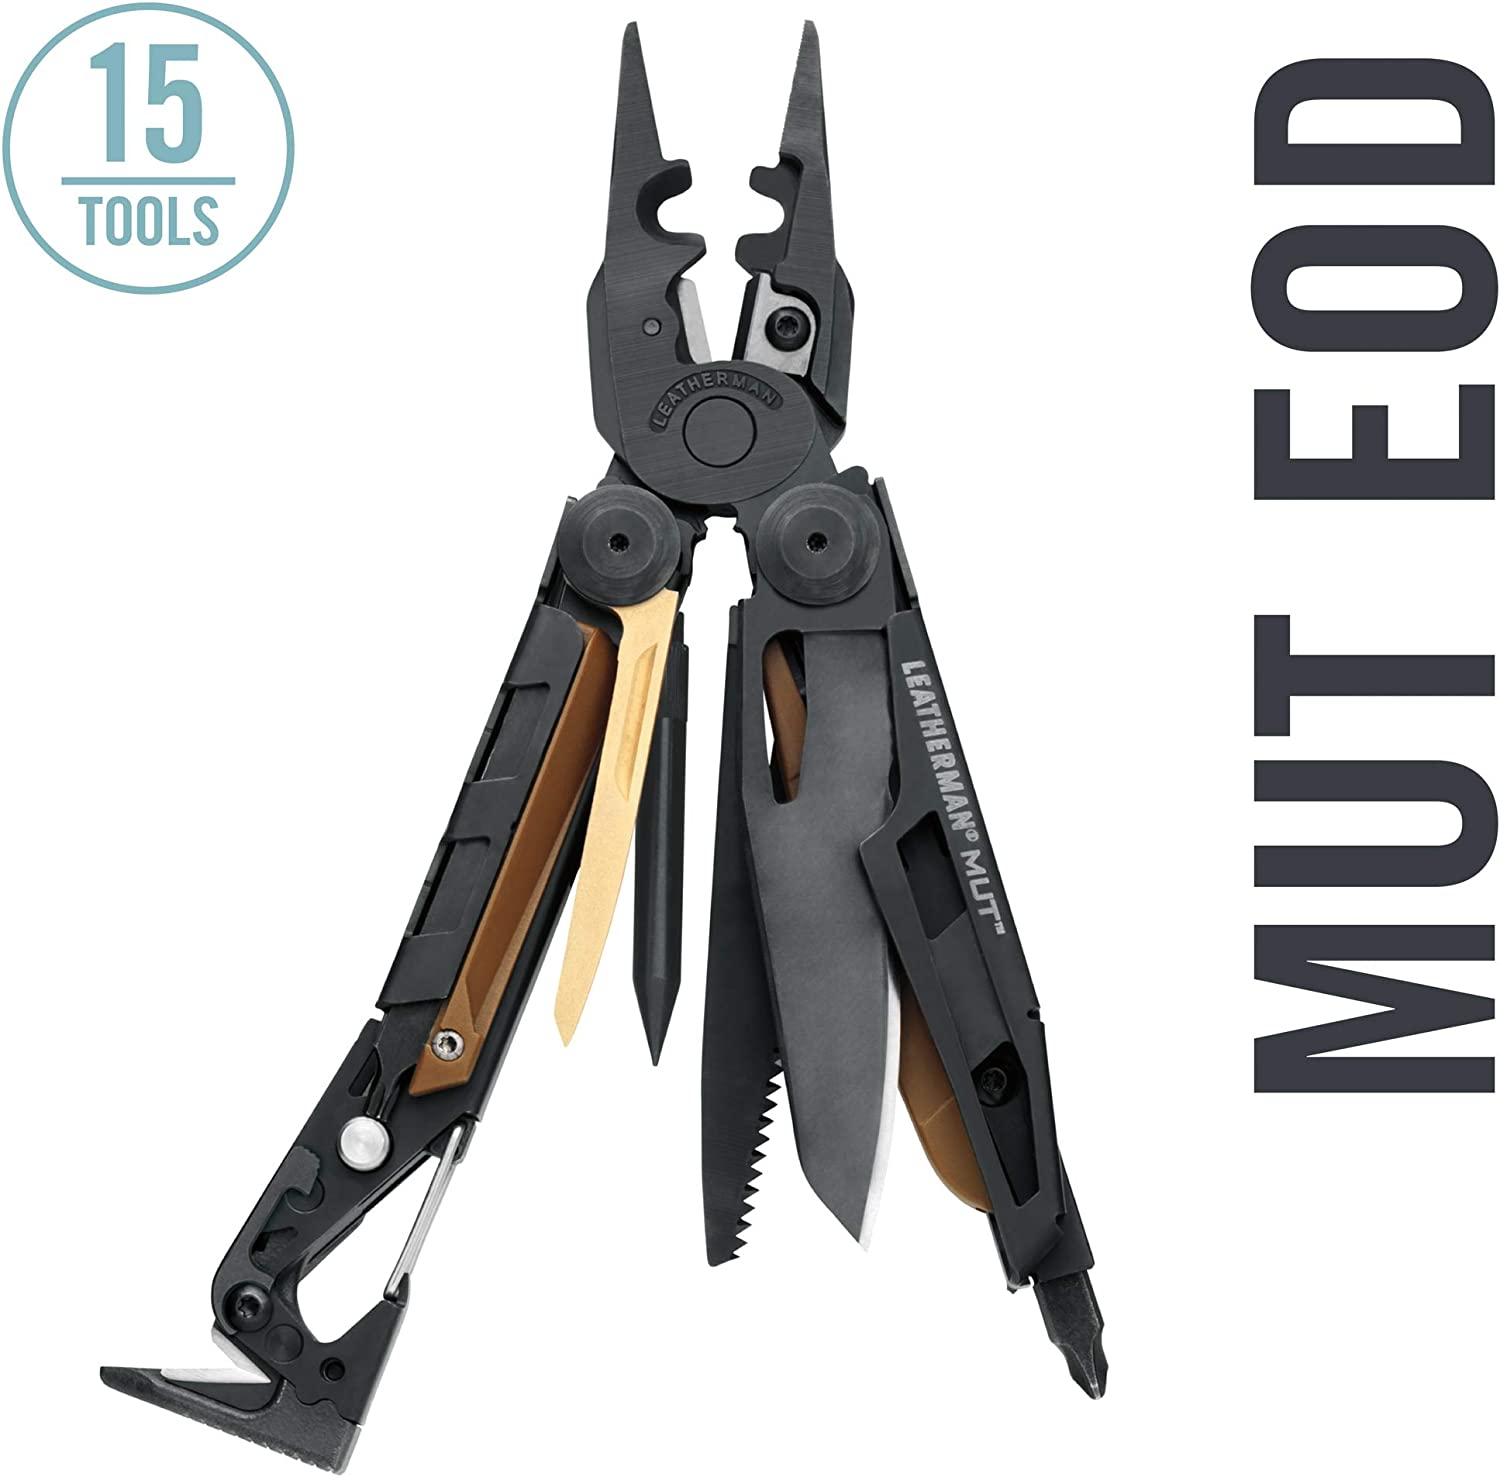 LEATHERMAN – MUT EOD Multitool with Firearm and EOD Tools for Technicians, Black with MOLLE Black Sheath FFP